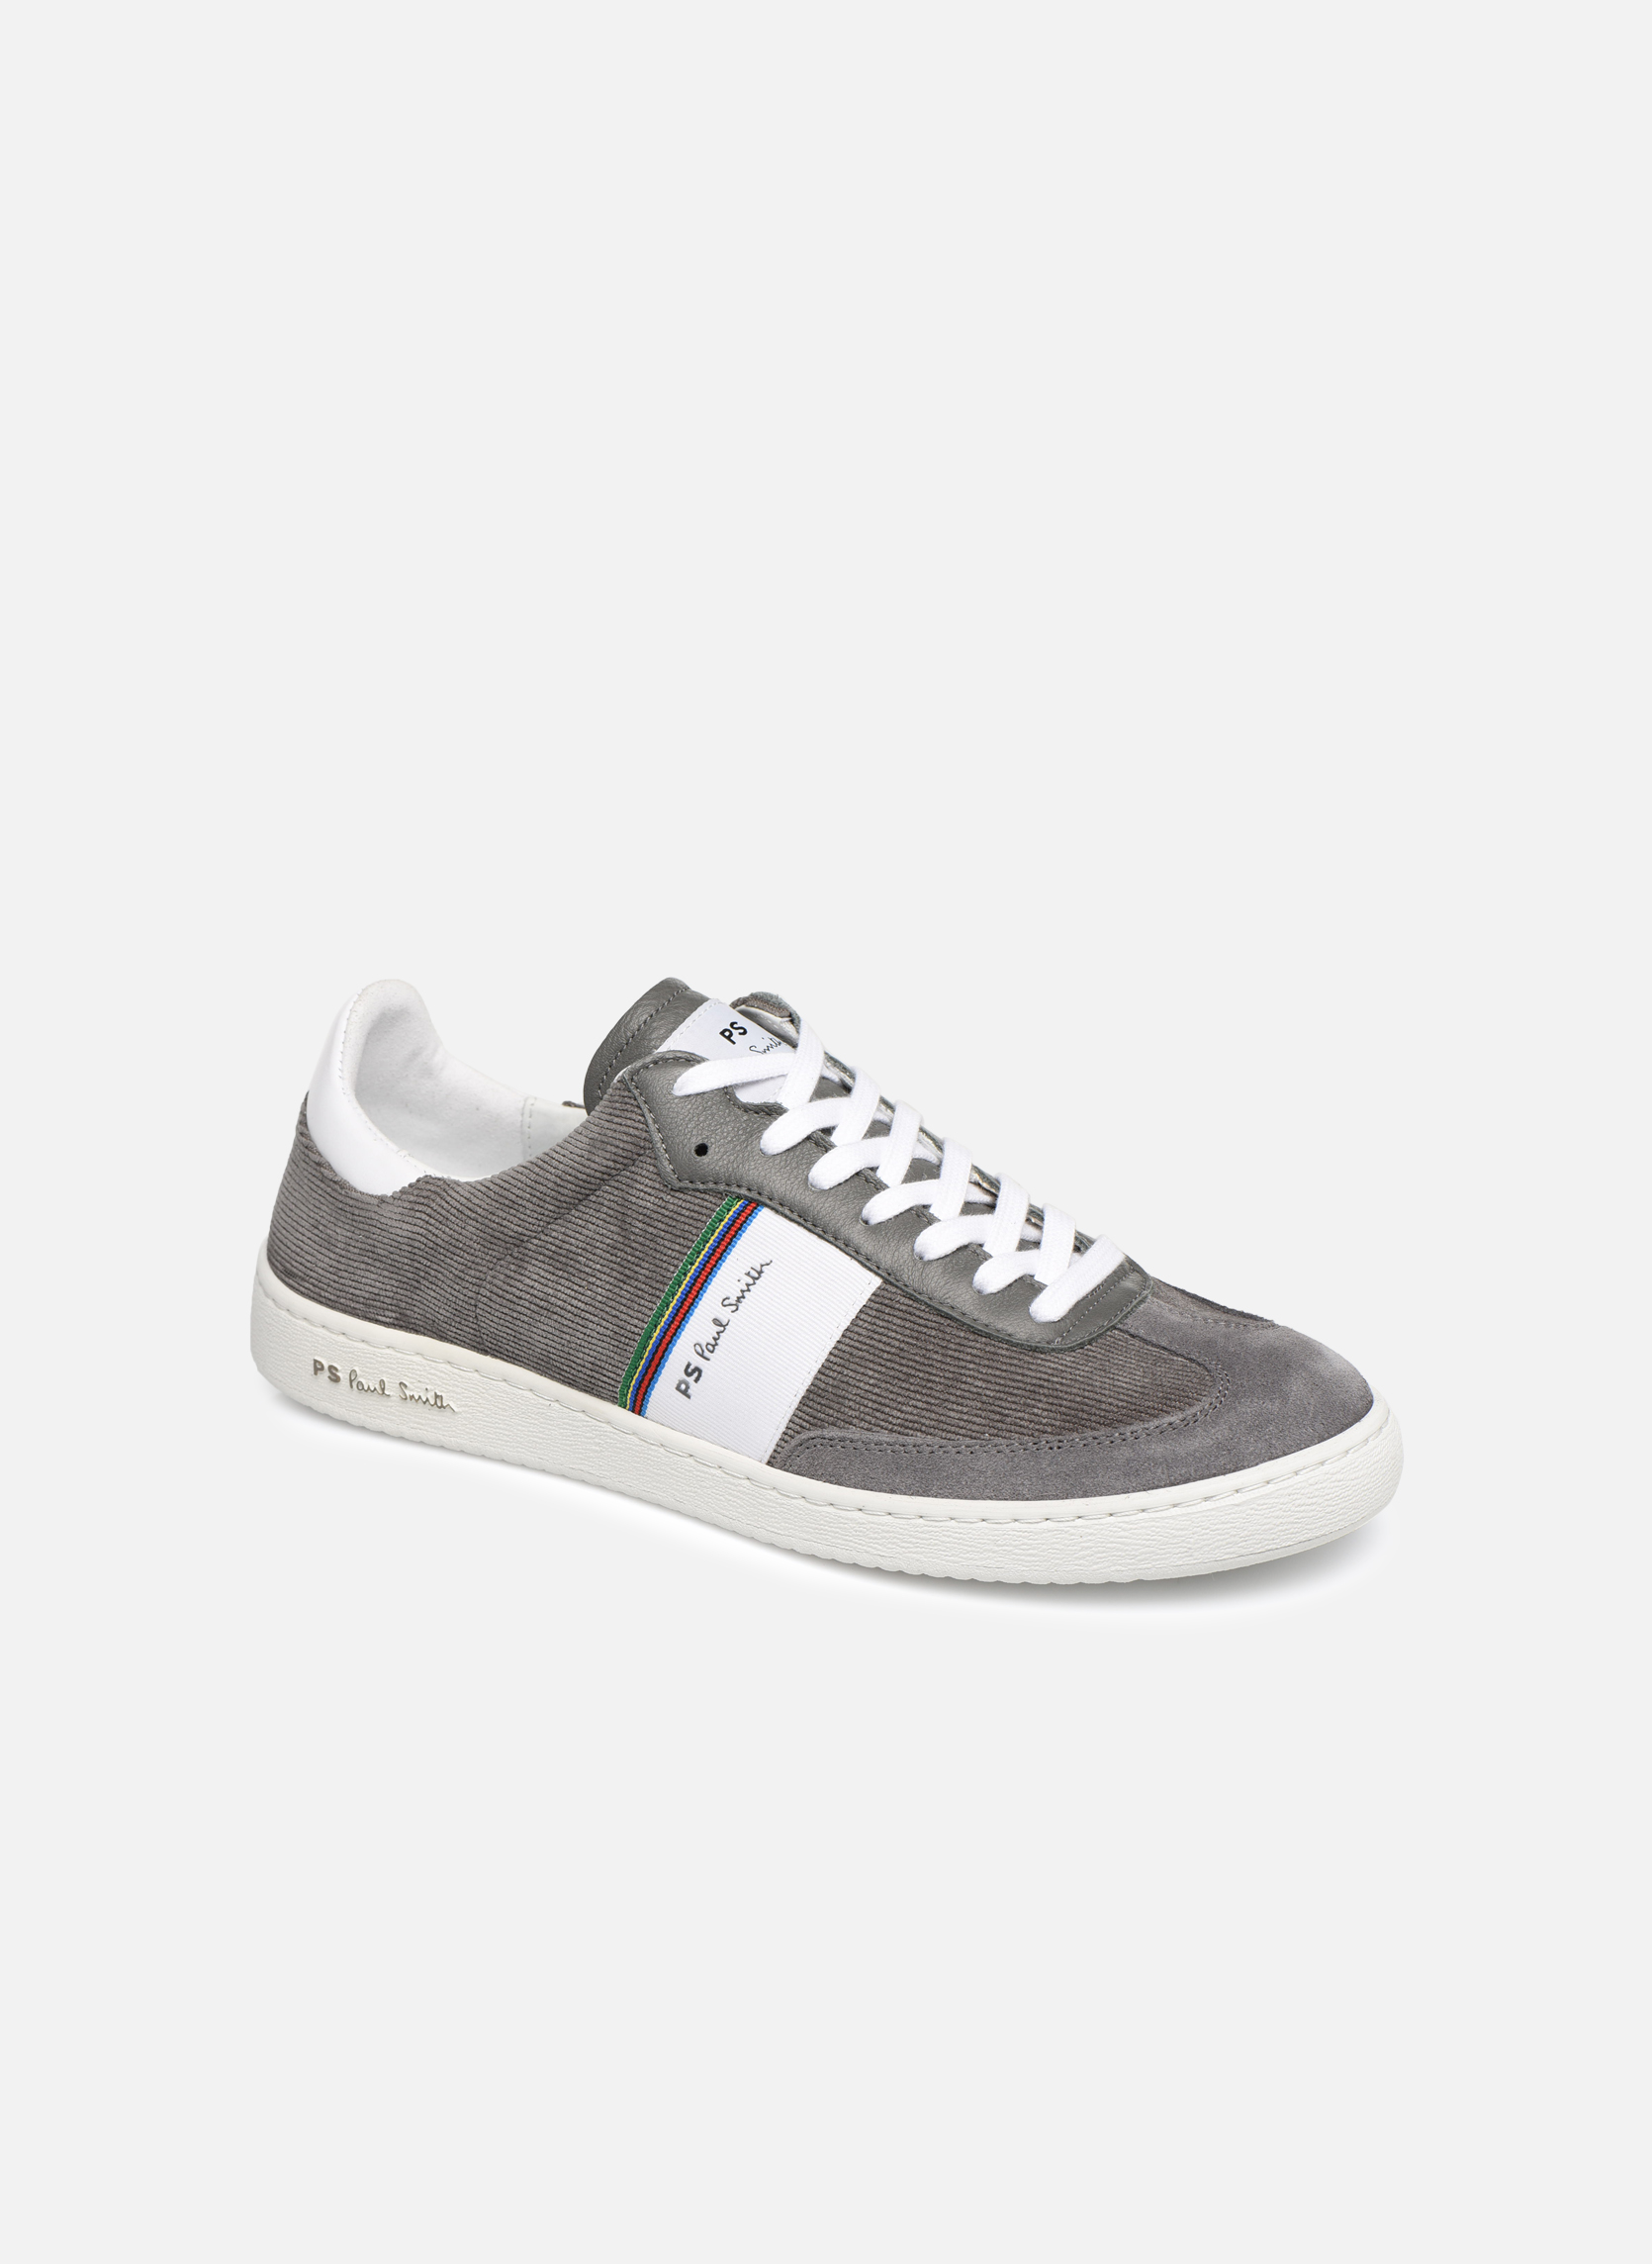 Sneakers PS Paul Smith Grijs